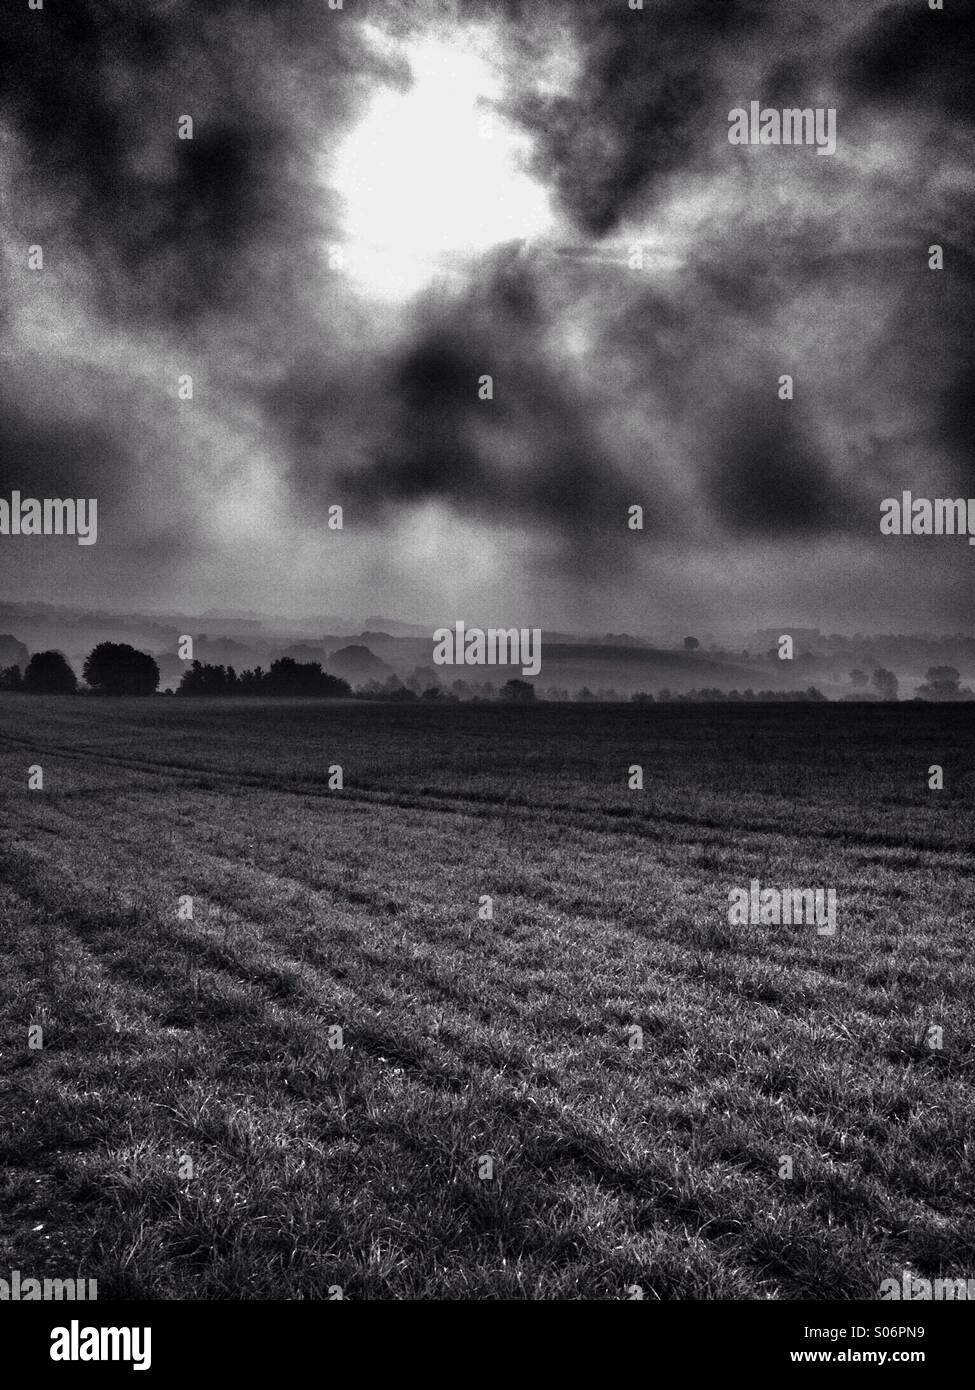 Overcast countryside with mist in valley - Stock Image